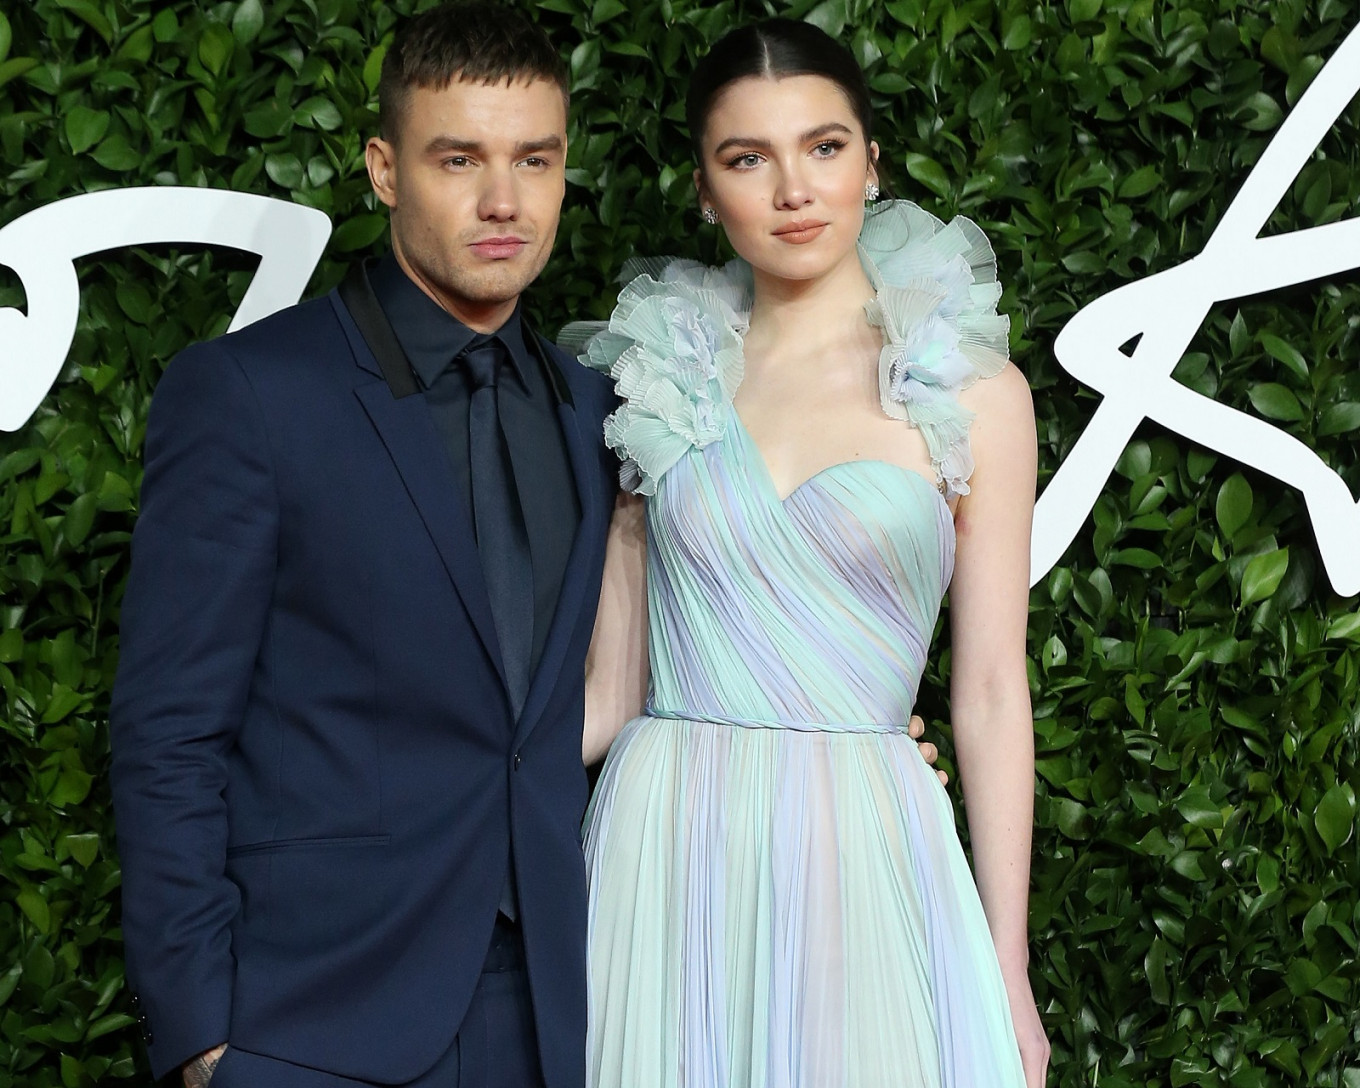 One Direction's Liam Payne engaged to US model